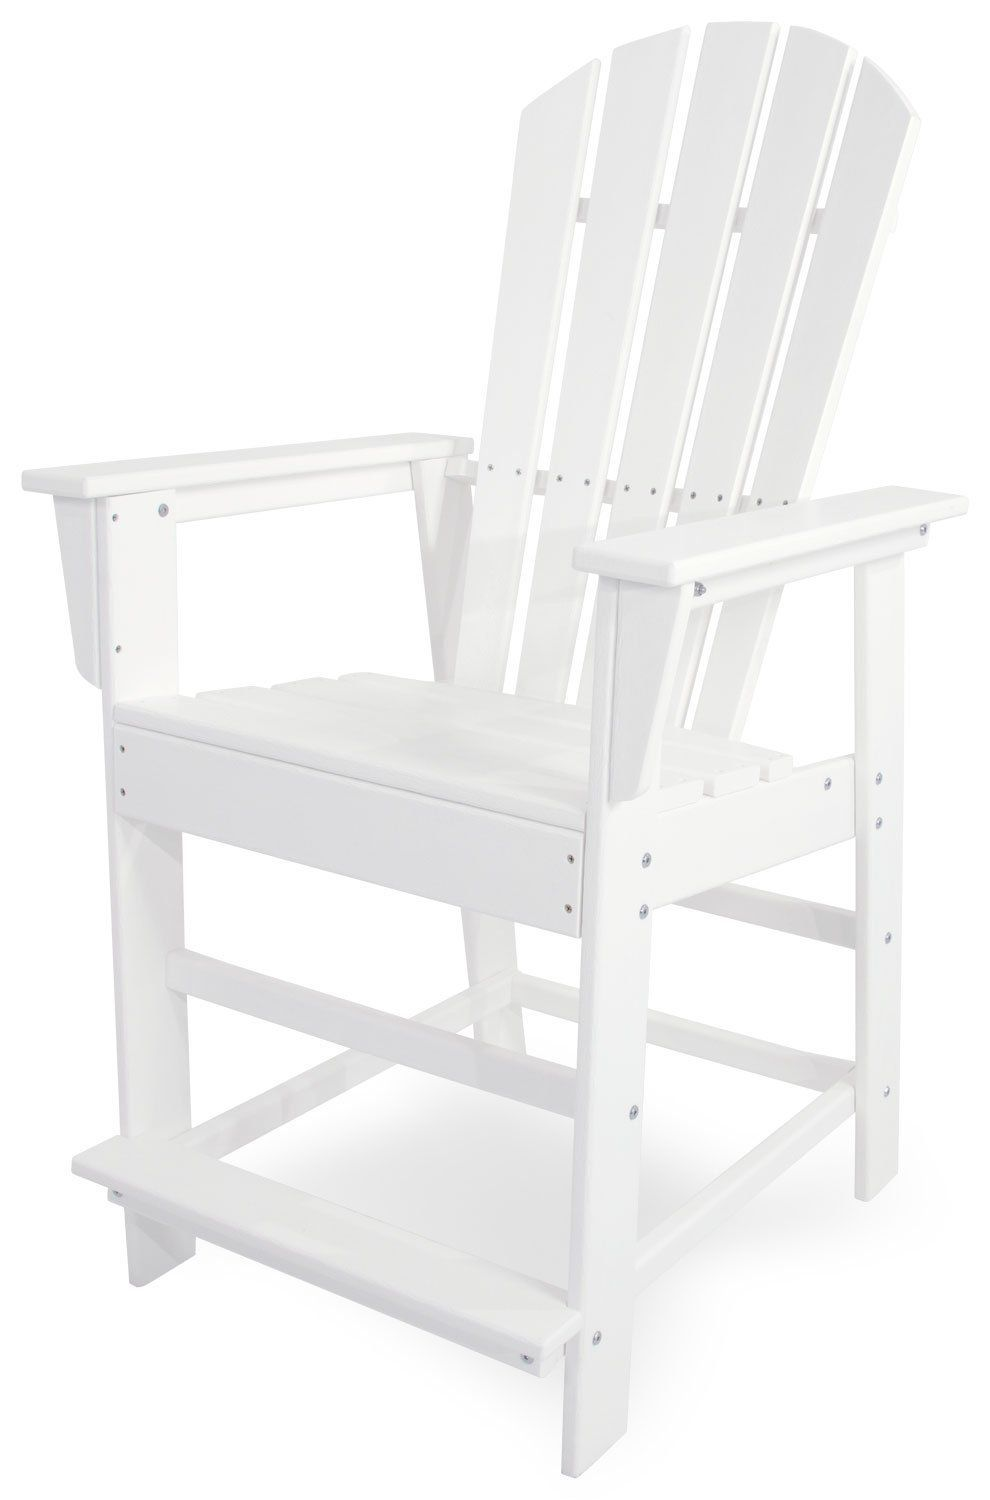 Adirondack Chairs For Sale In 2020